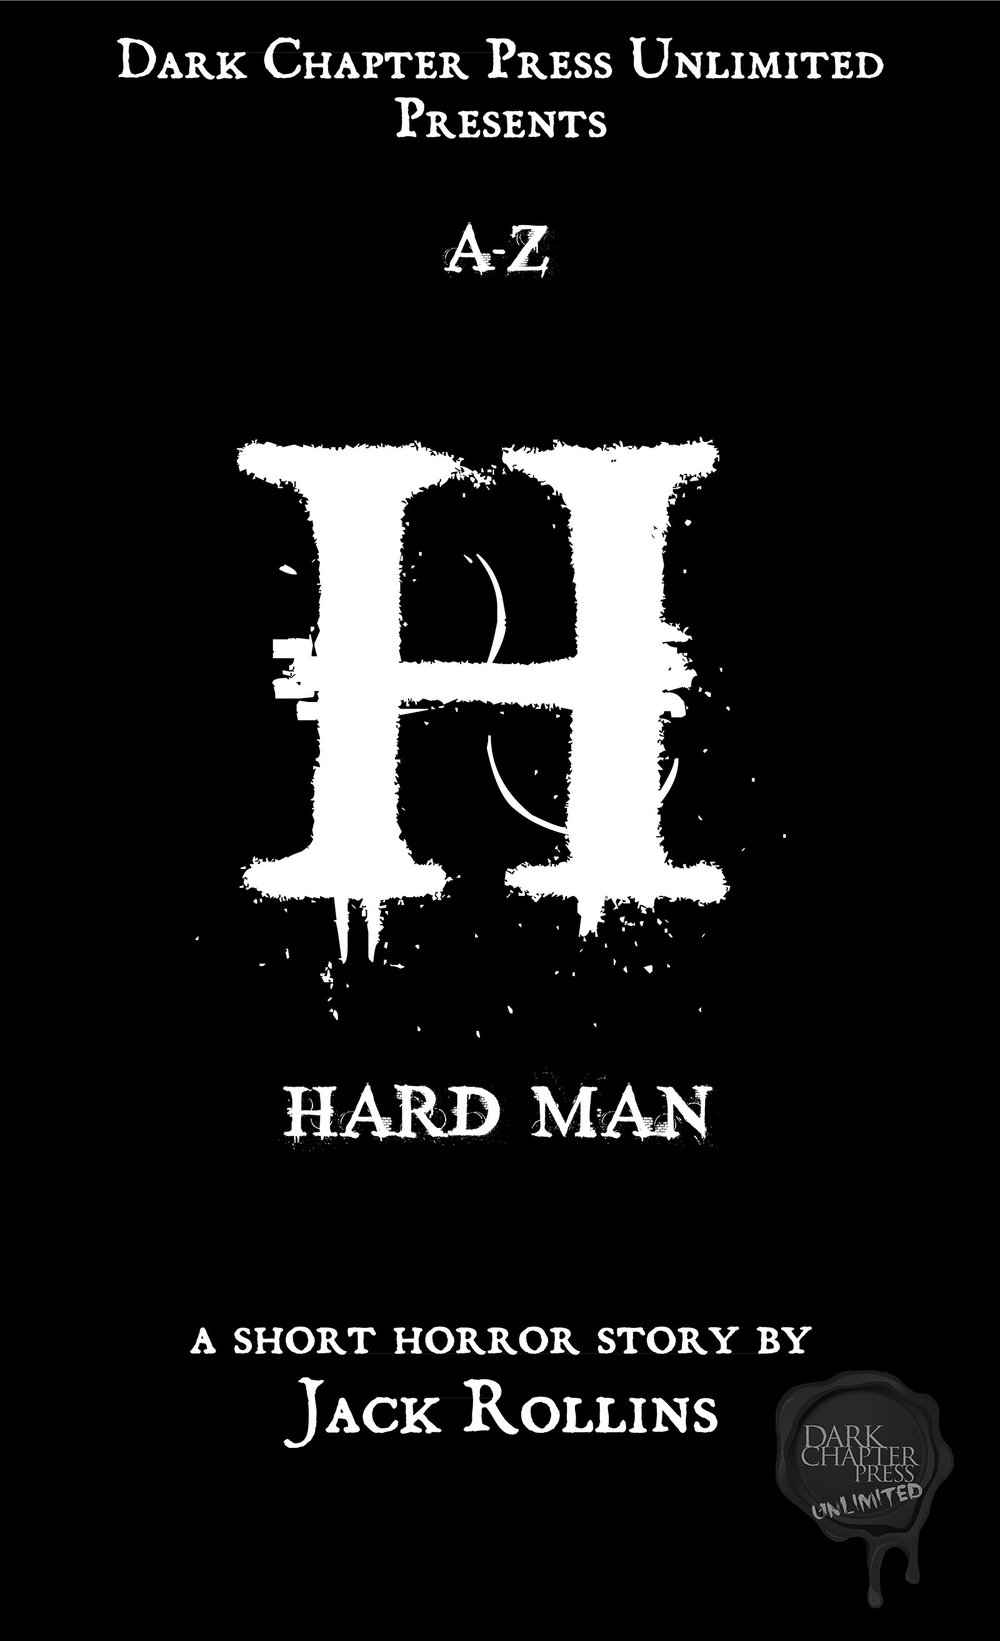 Cover art for Hard Man, by Jack Rollins. Dark Chapter Press's latest release.